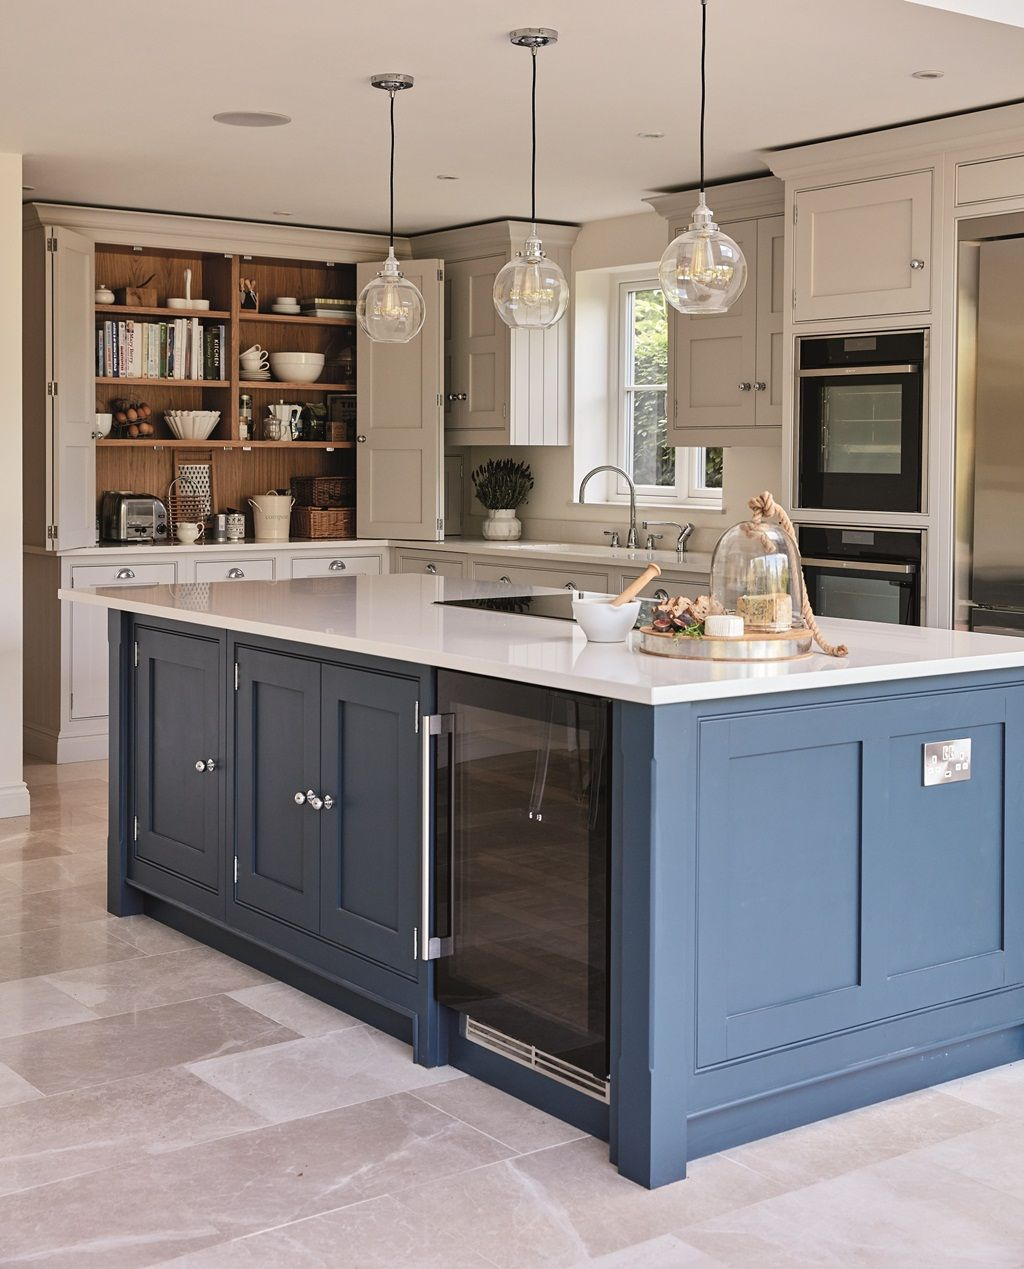 Kitchen Cabinet Ideas For 2019 Modern Kitchens With A Wonderfully